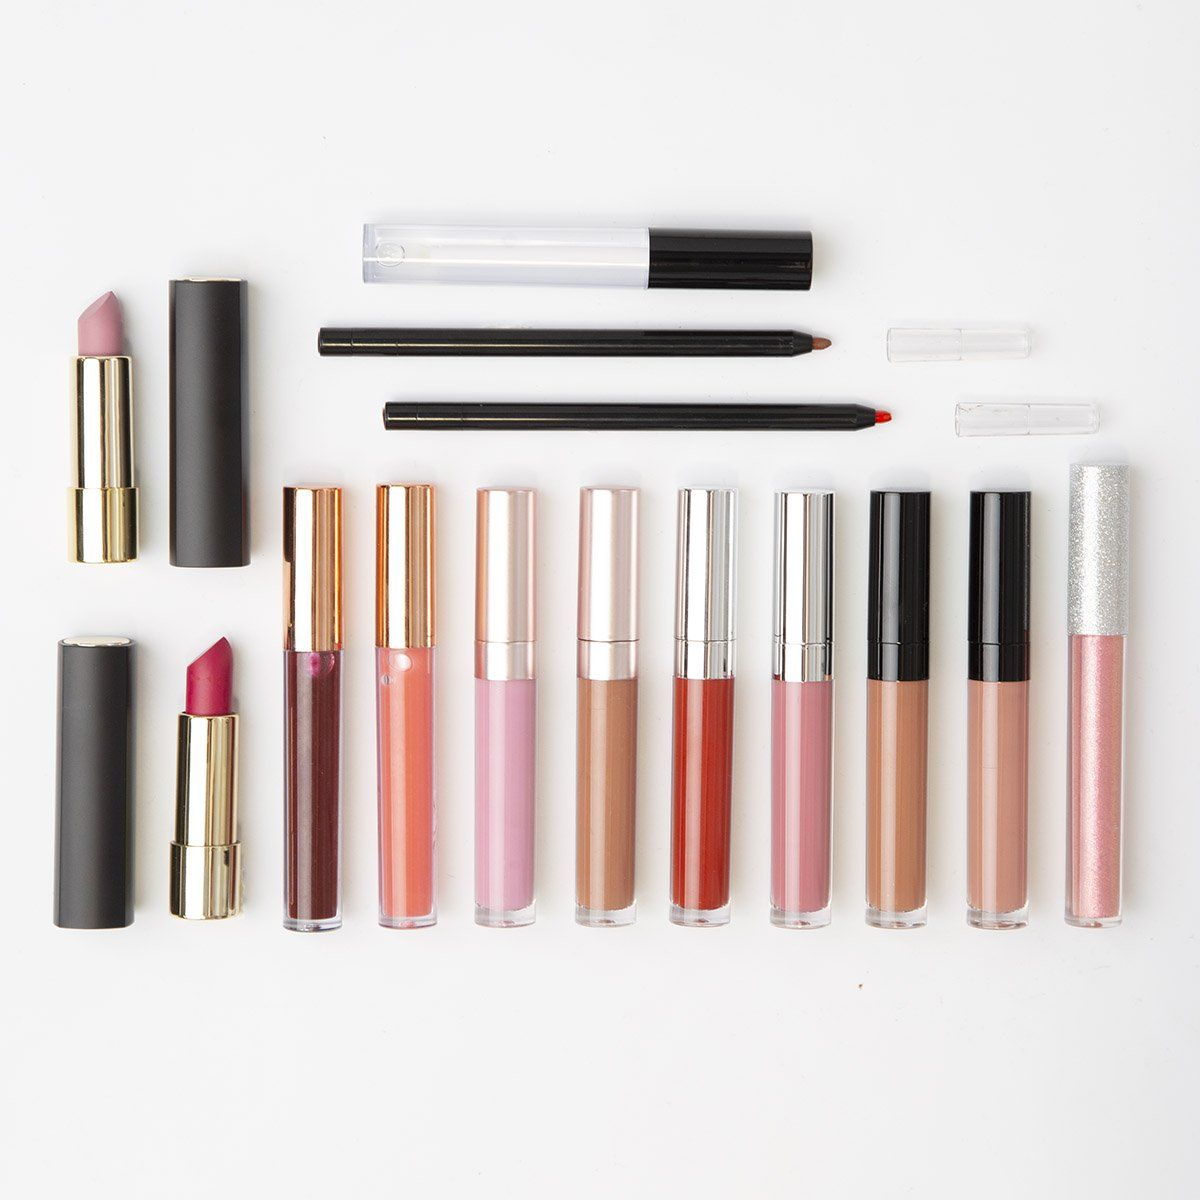 Online shop of makeup products Aurora Private Label